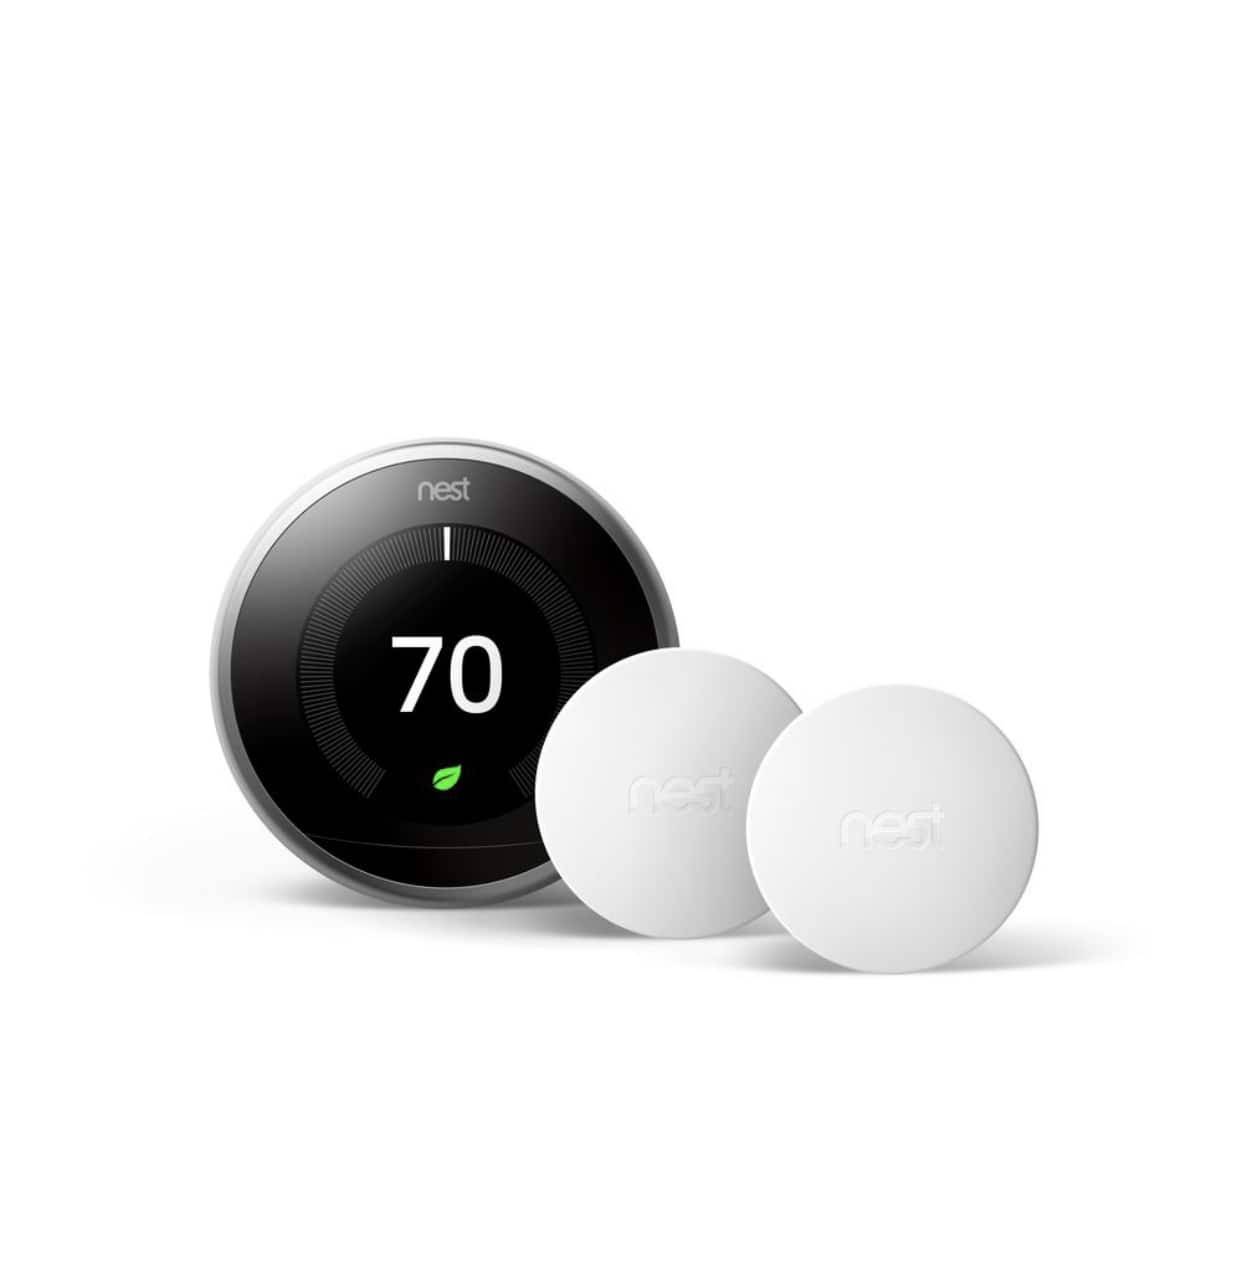 Nest Learning Thermostat 3rd Gen in Stainless Steel and Google Nest Temperature sensor (2-pack) at Home Depot for $214